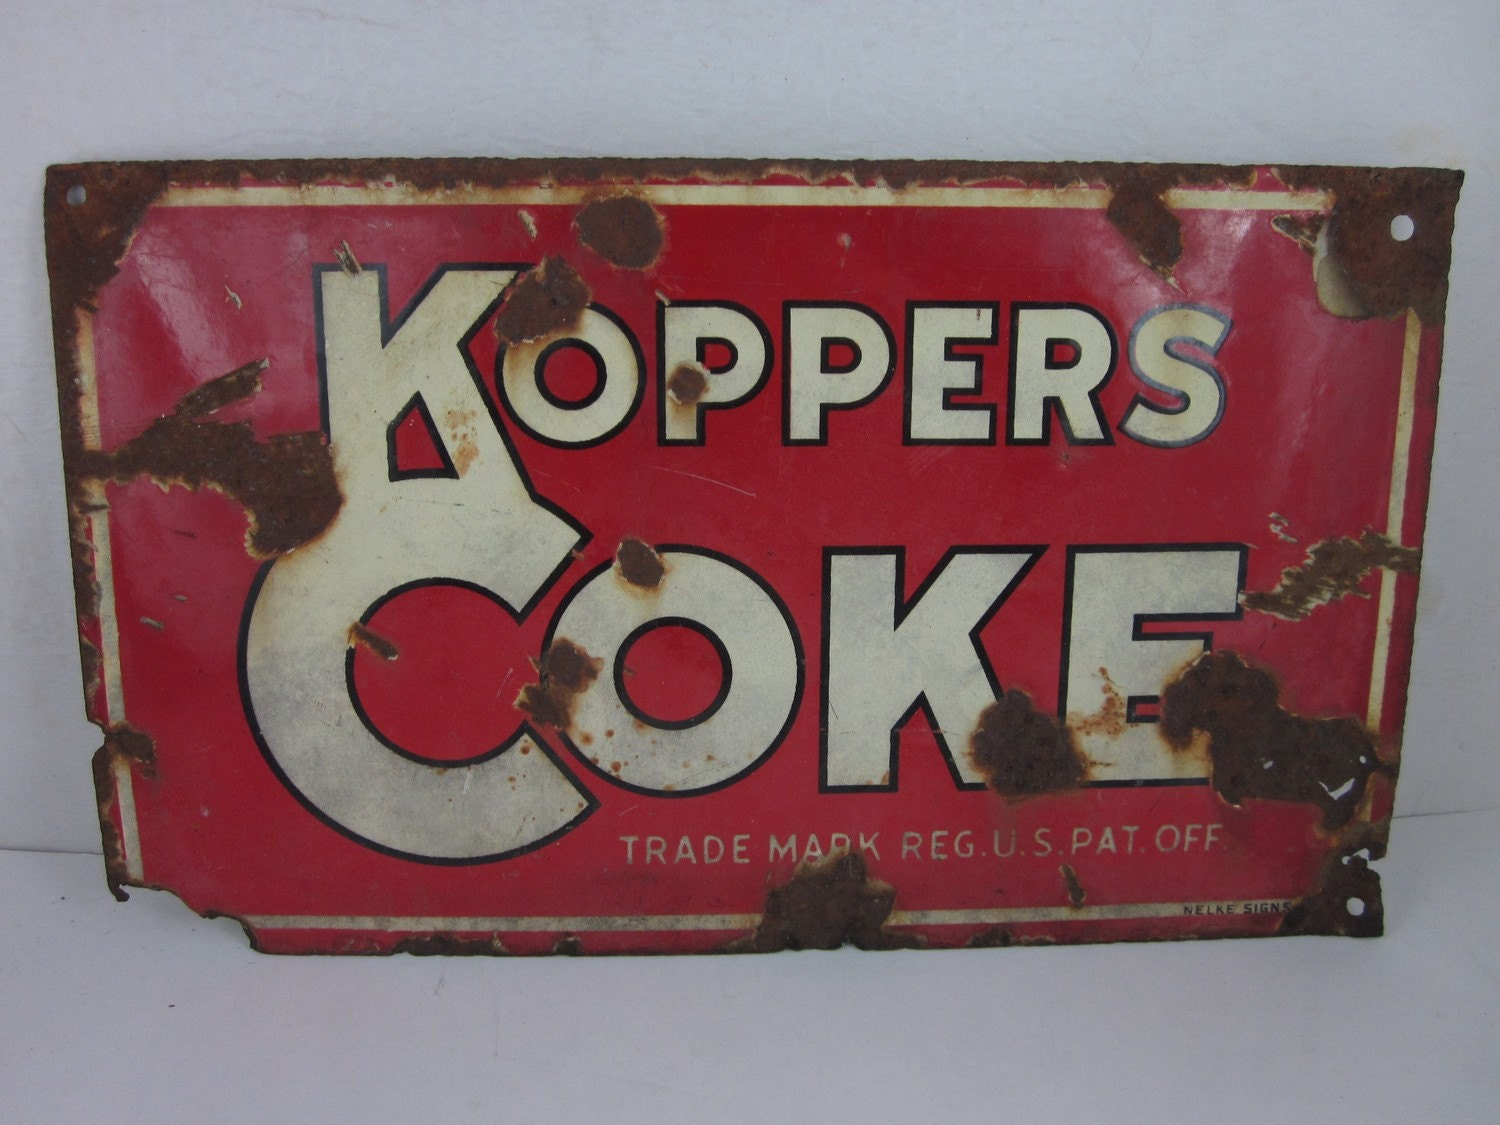 vintage heavy metal painted porcelain nelke sign, koppers coke, free shipping